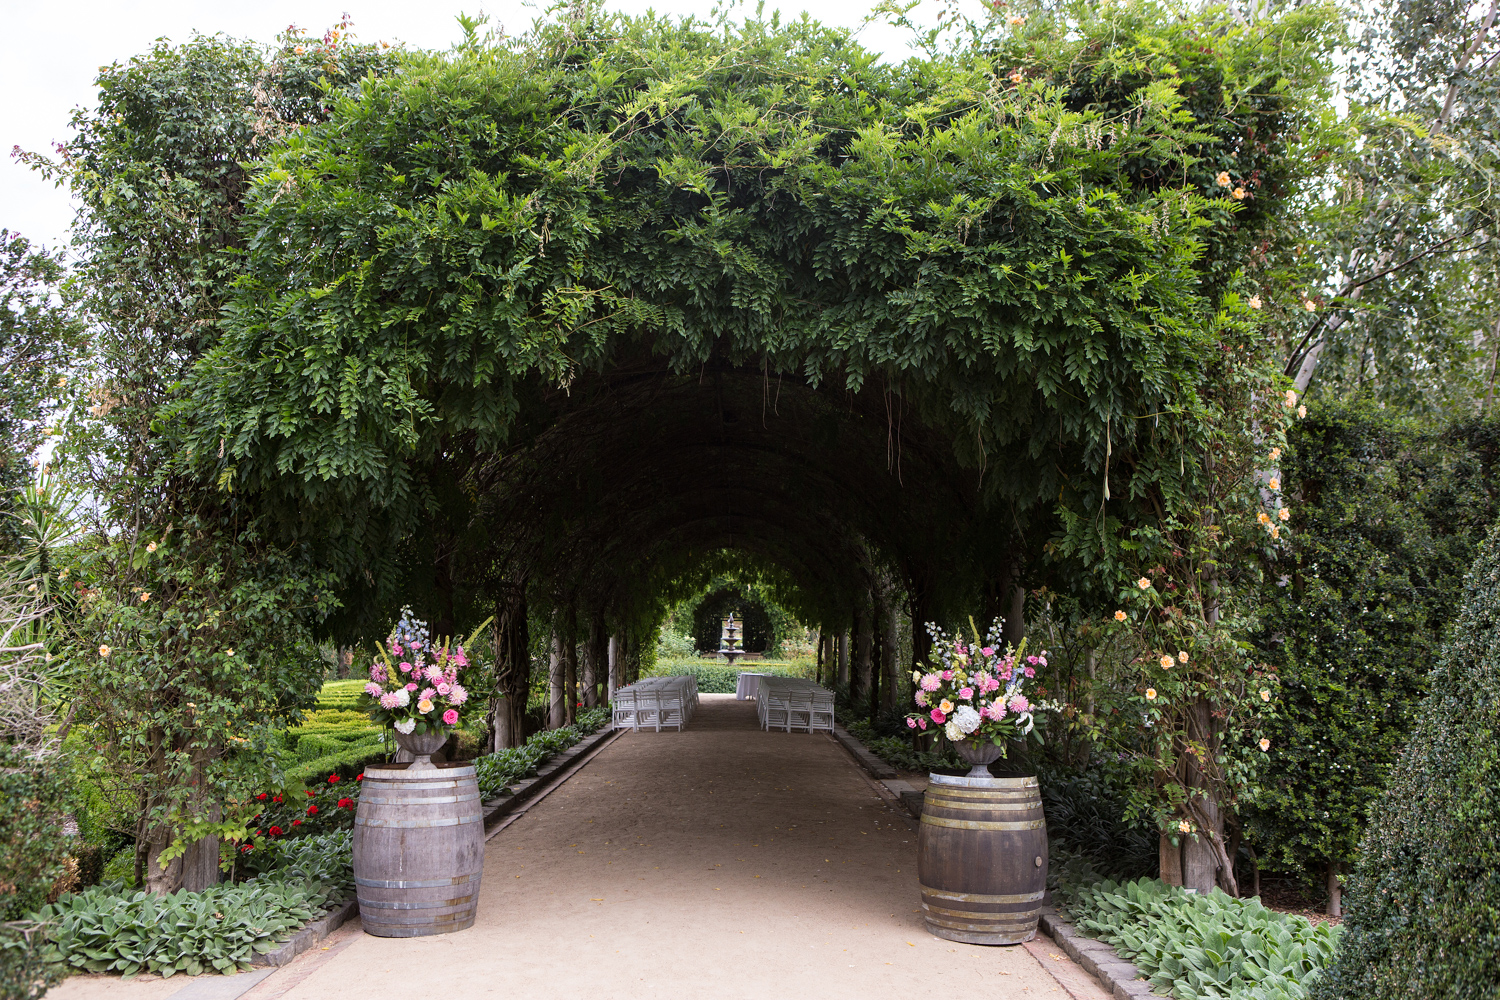 Alowyn-gardens-wedding-photo-15.jpg